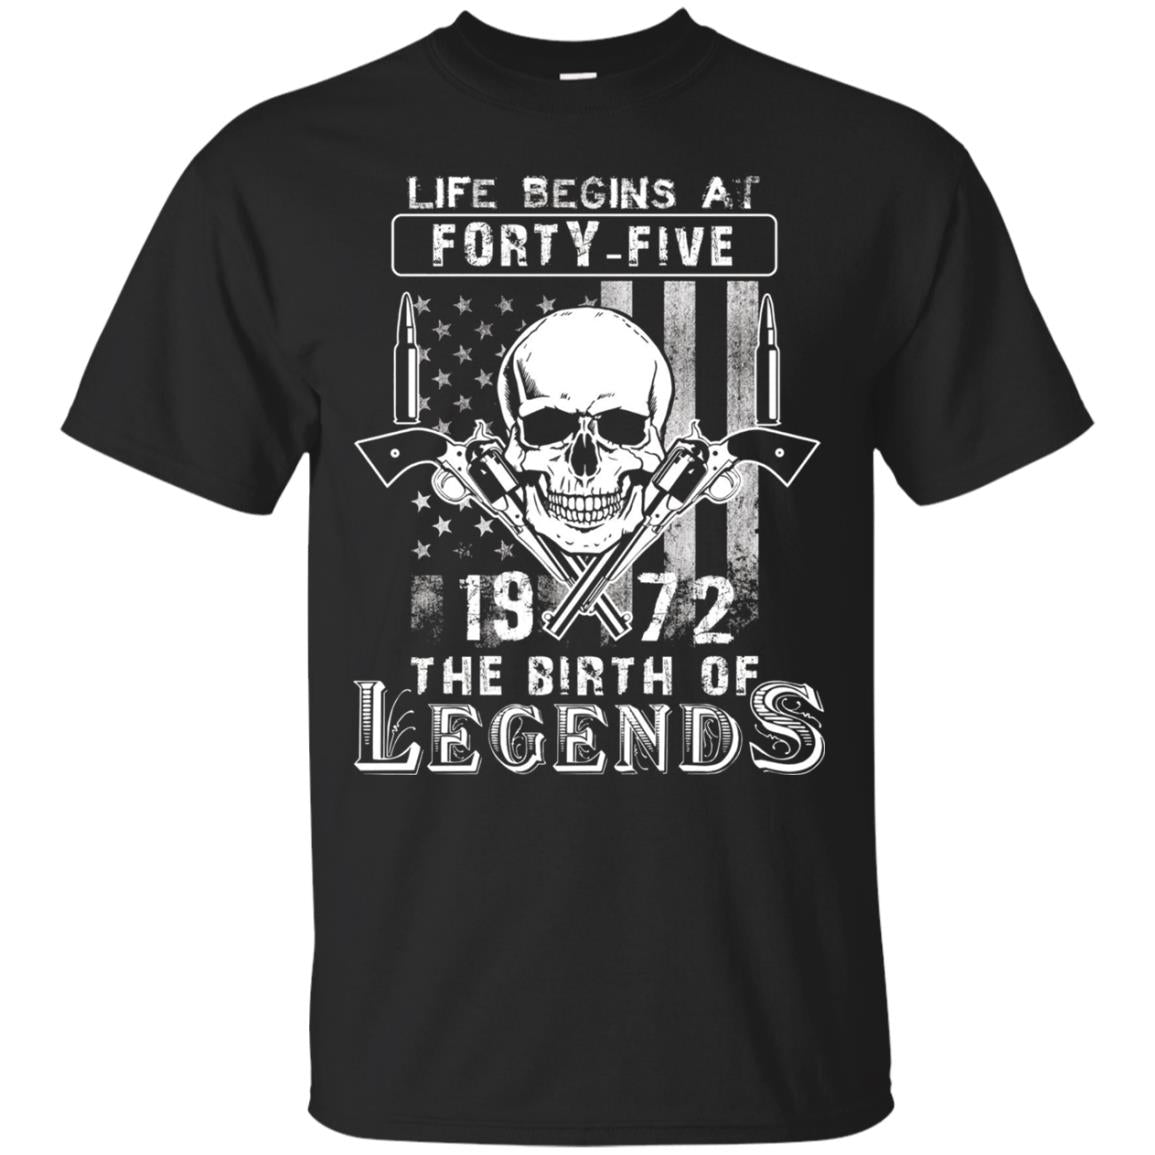 Life Begins At Forty Five 1972 The Birth Of Legends 46th Birthday T-shirt